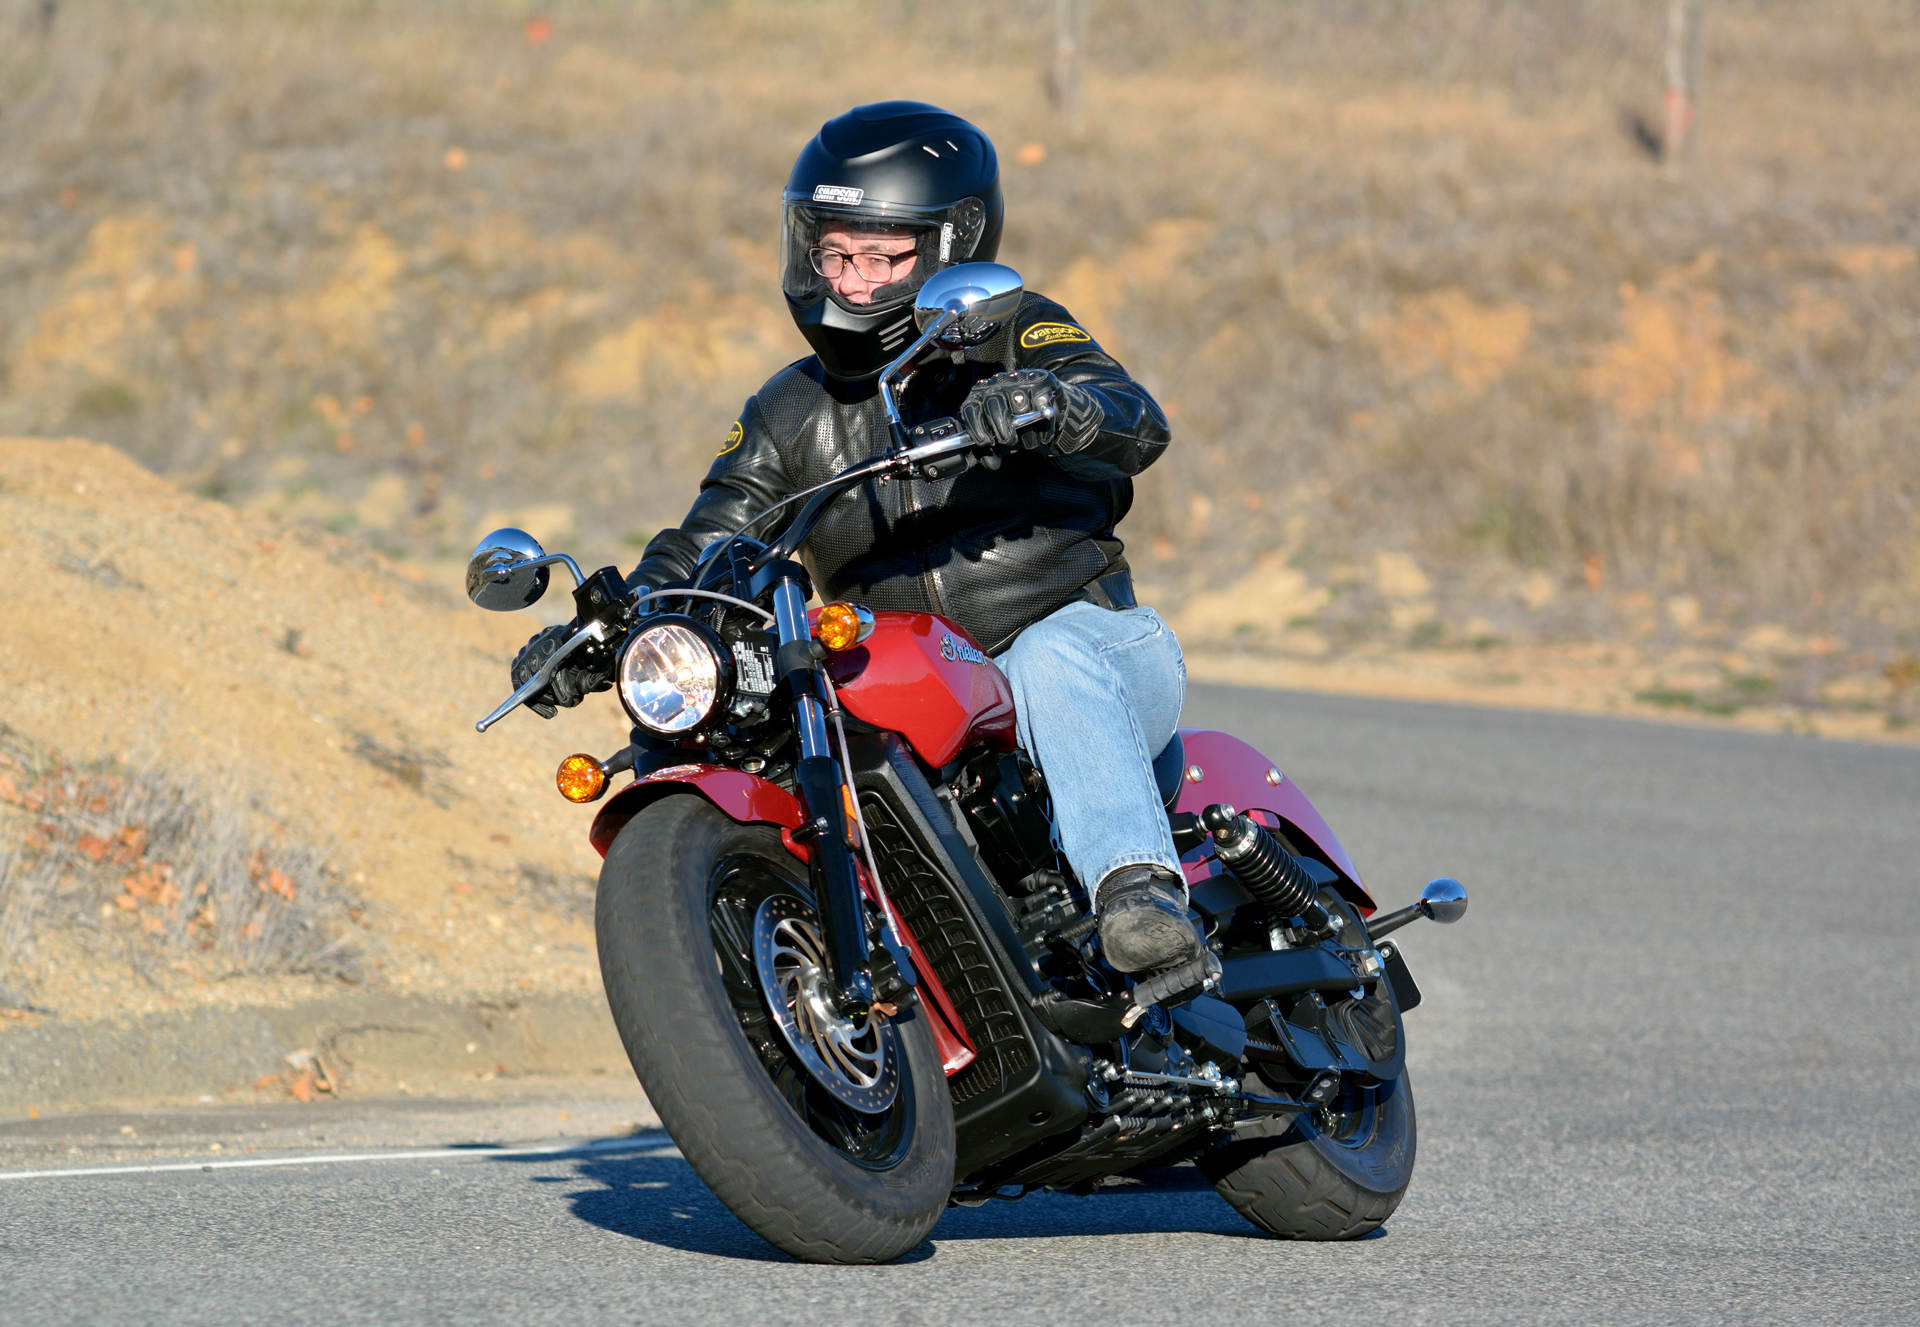 2016 Indian Scout Sixty Md Ride Review Part 2